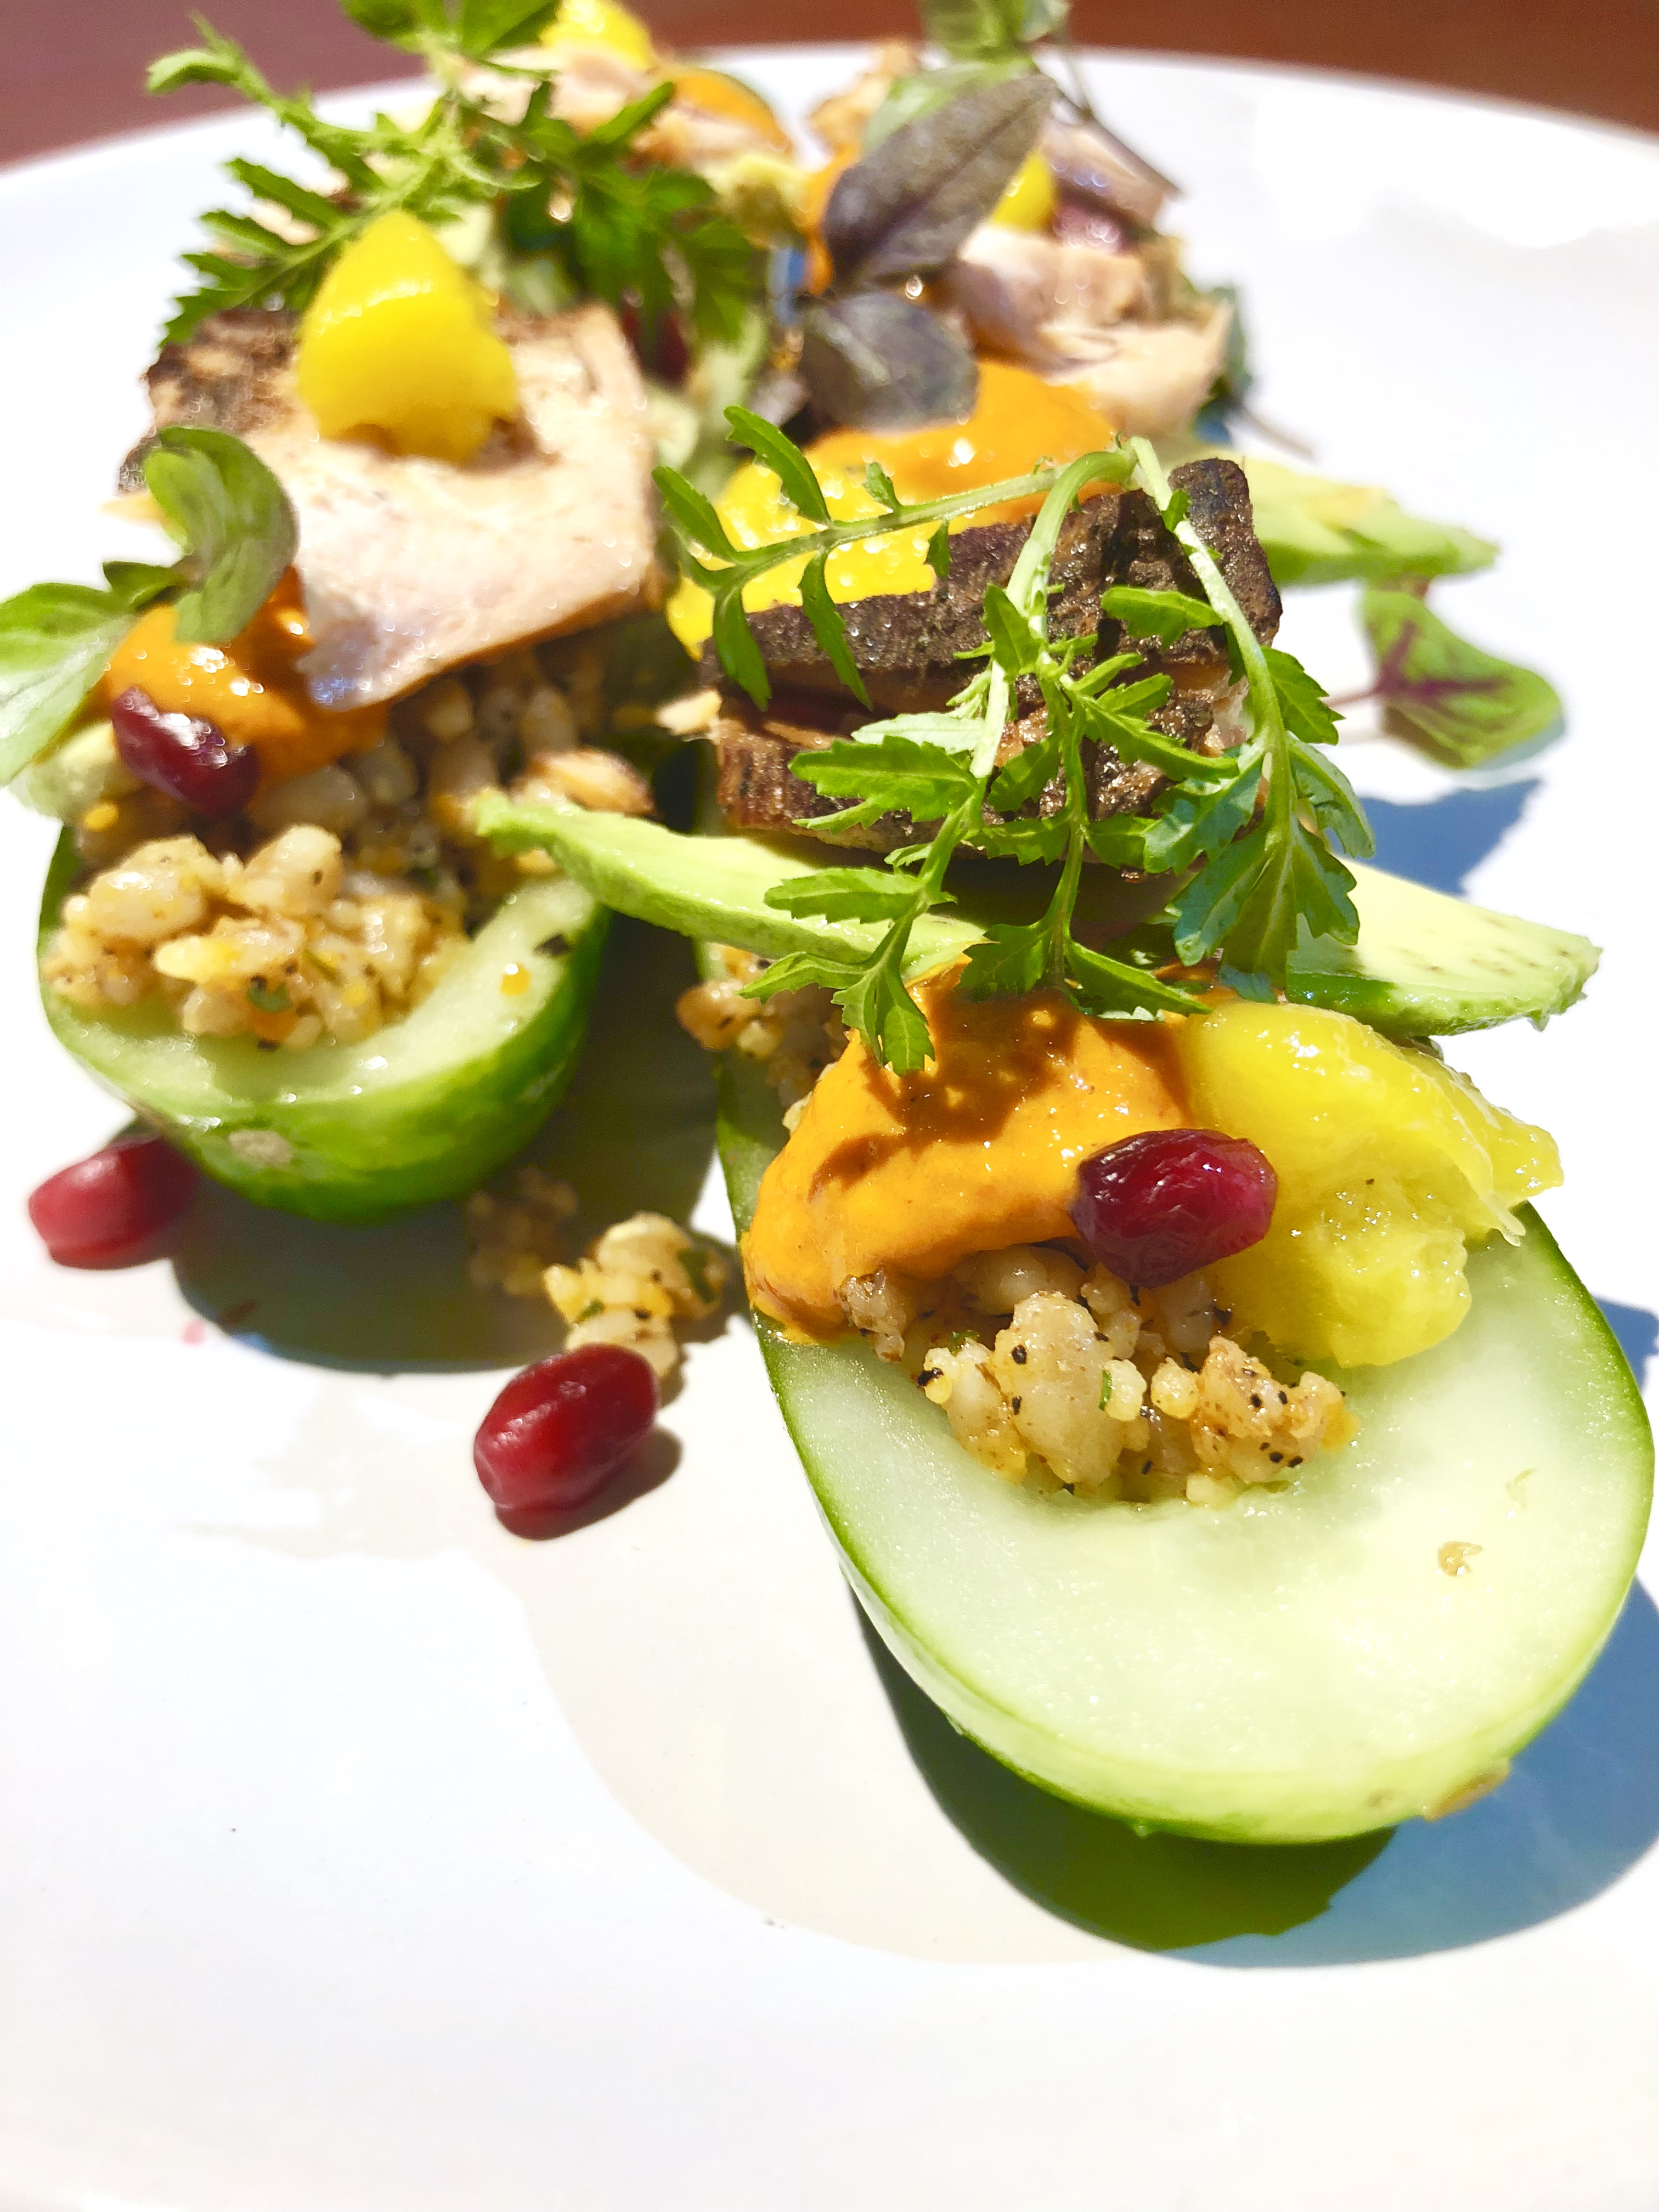 Cedar Smoked Salmon, ancient grains, lemon verbena, Pom seeds, mango, in a marinated cucumber boat.